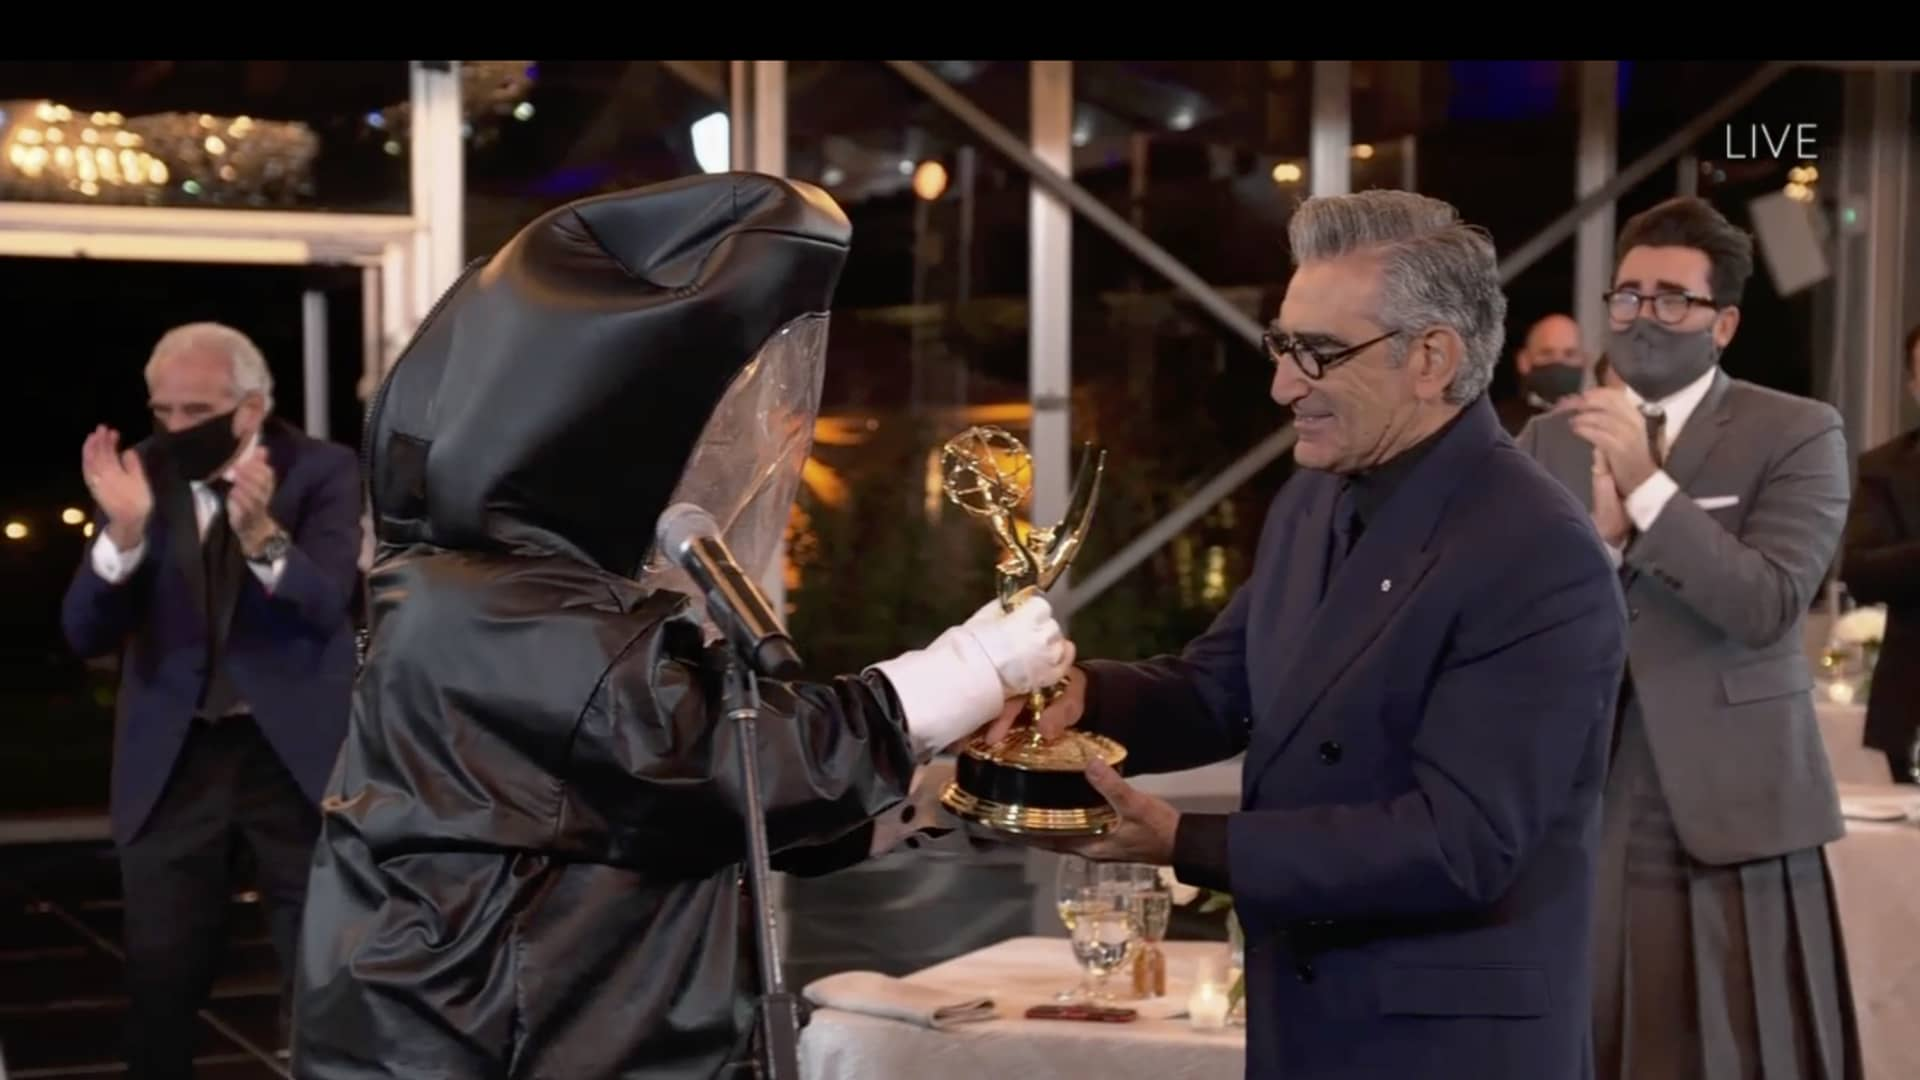 Eugene Levy receives his Emmy Award for lead actor in a comedy series during the September 20, 2020 ceremony.